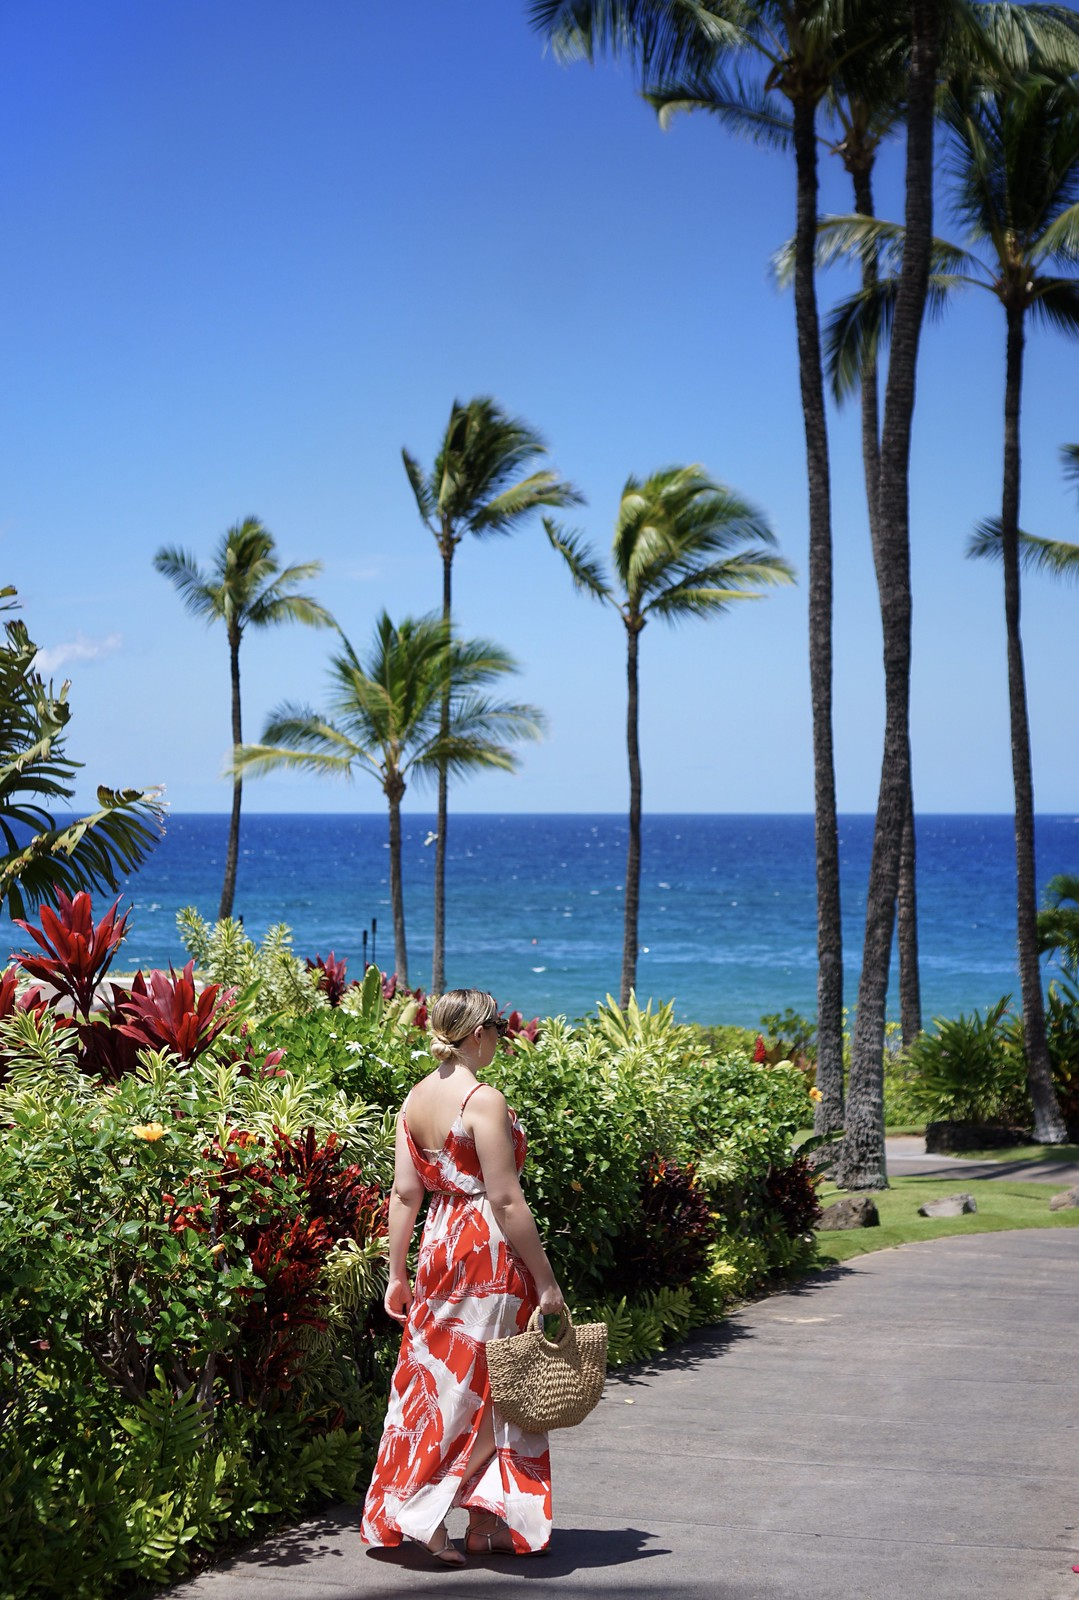 Hawaii Outfit Inspiration Palm Print Maxi Dress Fairmont Kea Lani Maui Hawaii Ocean View